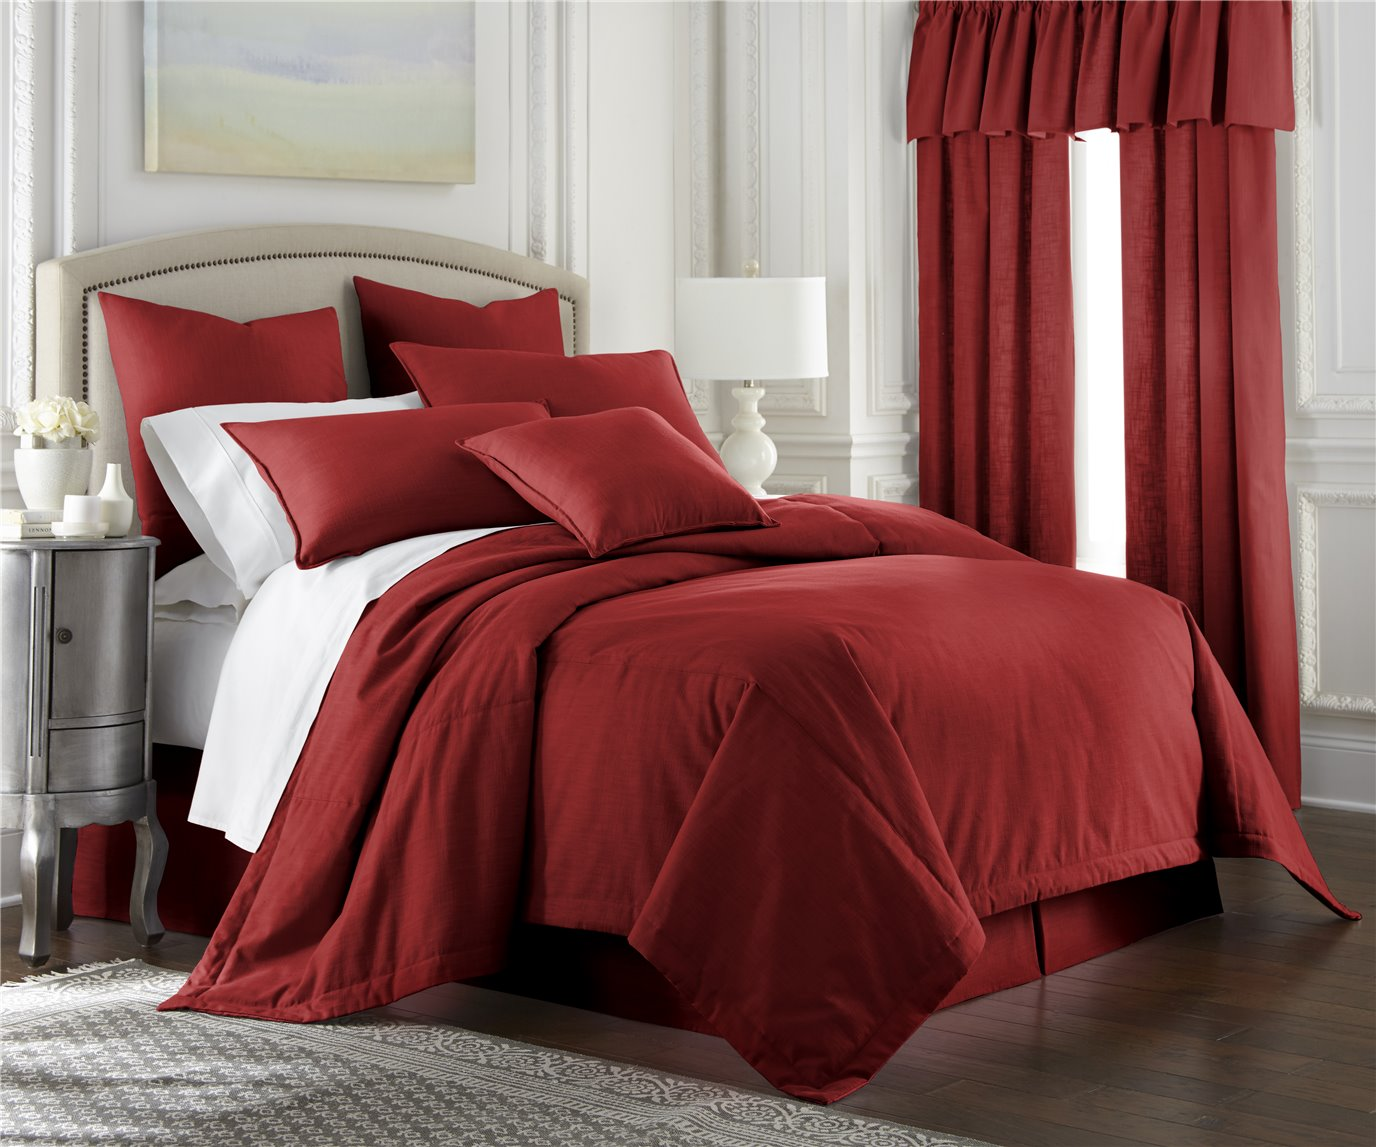 Cambric Red Duvet Cover Super King